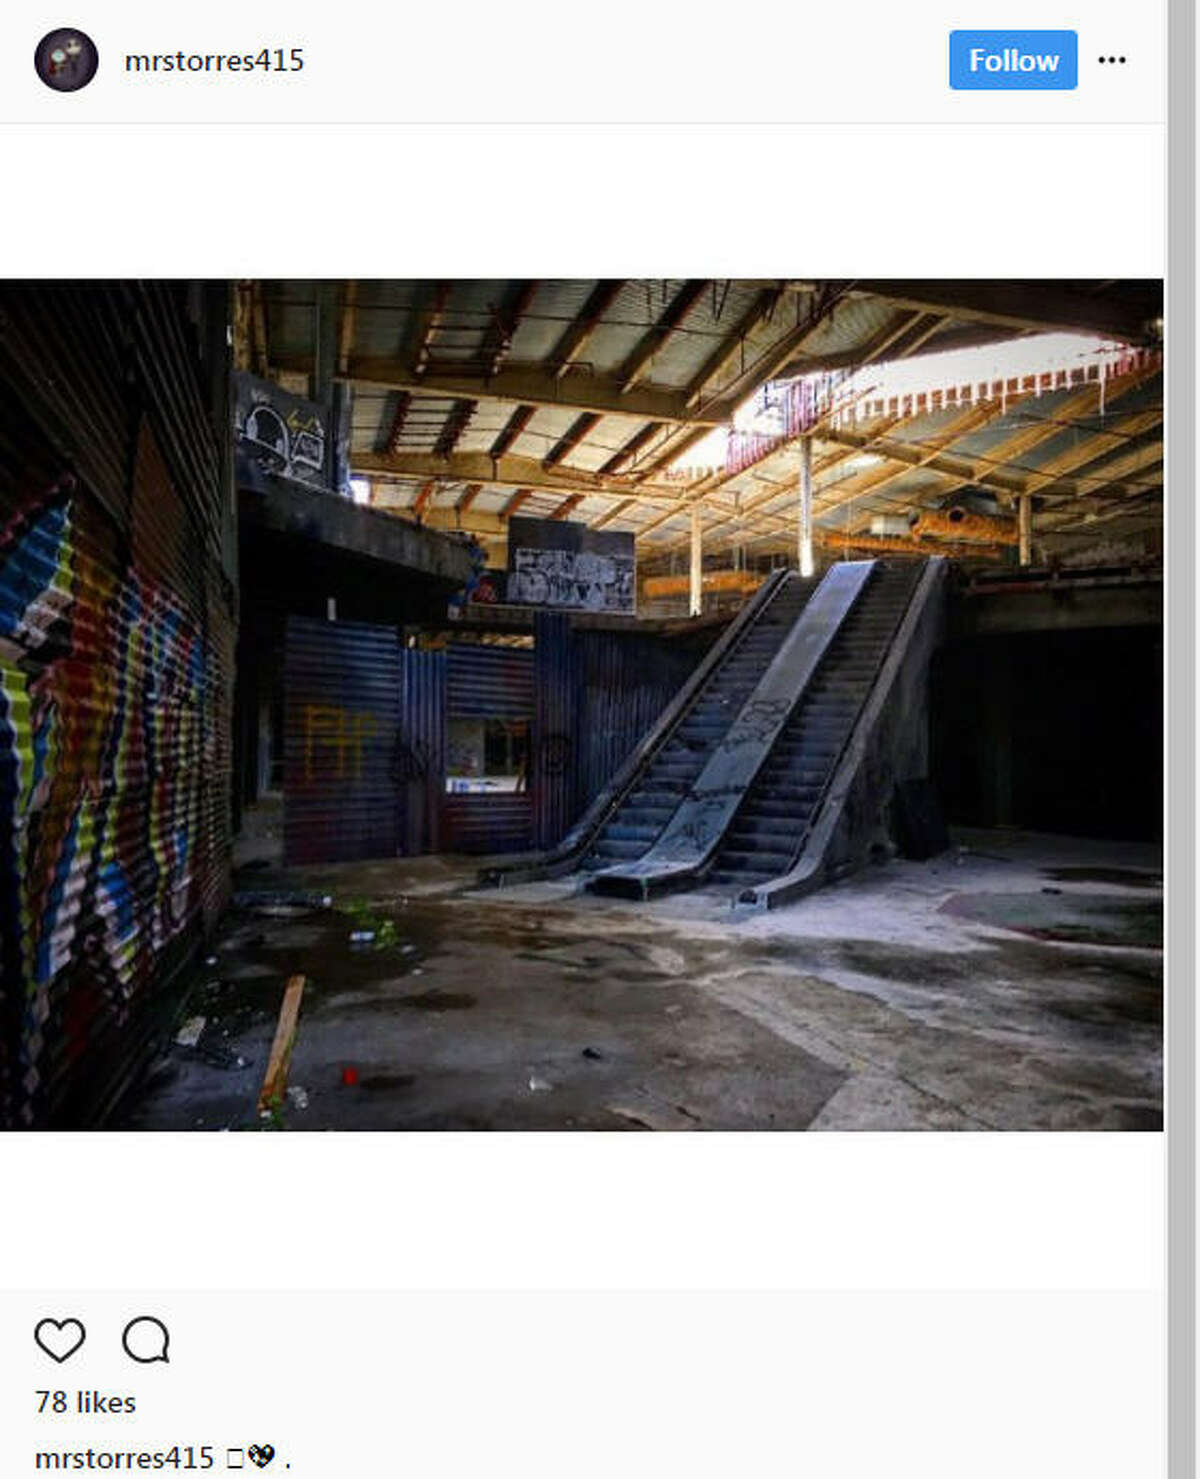 As online shopping continues to grow, some malls are becoming ghost towns and surreal for those who explore them.Image source: Instagram